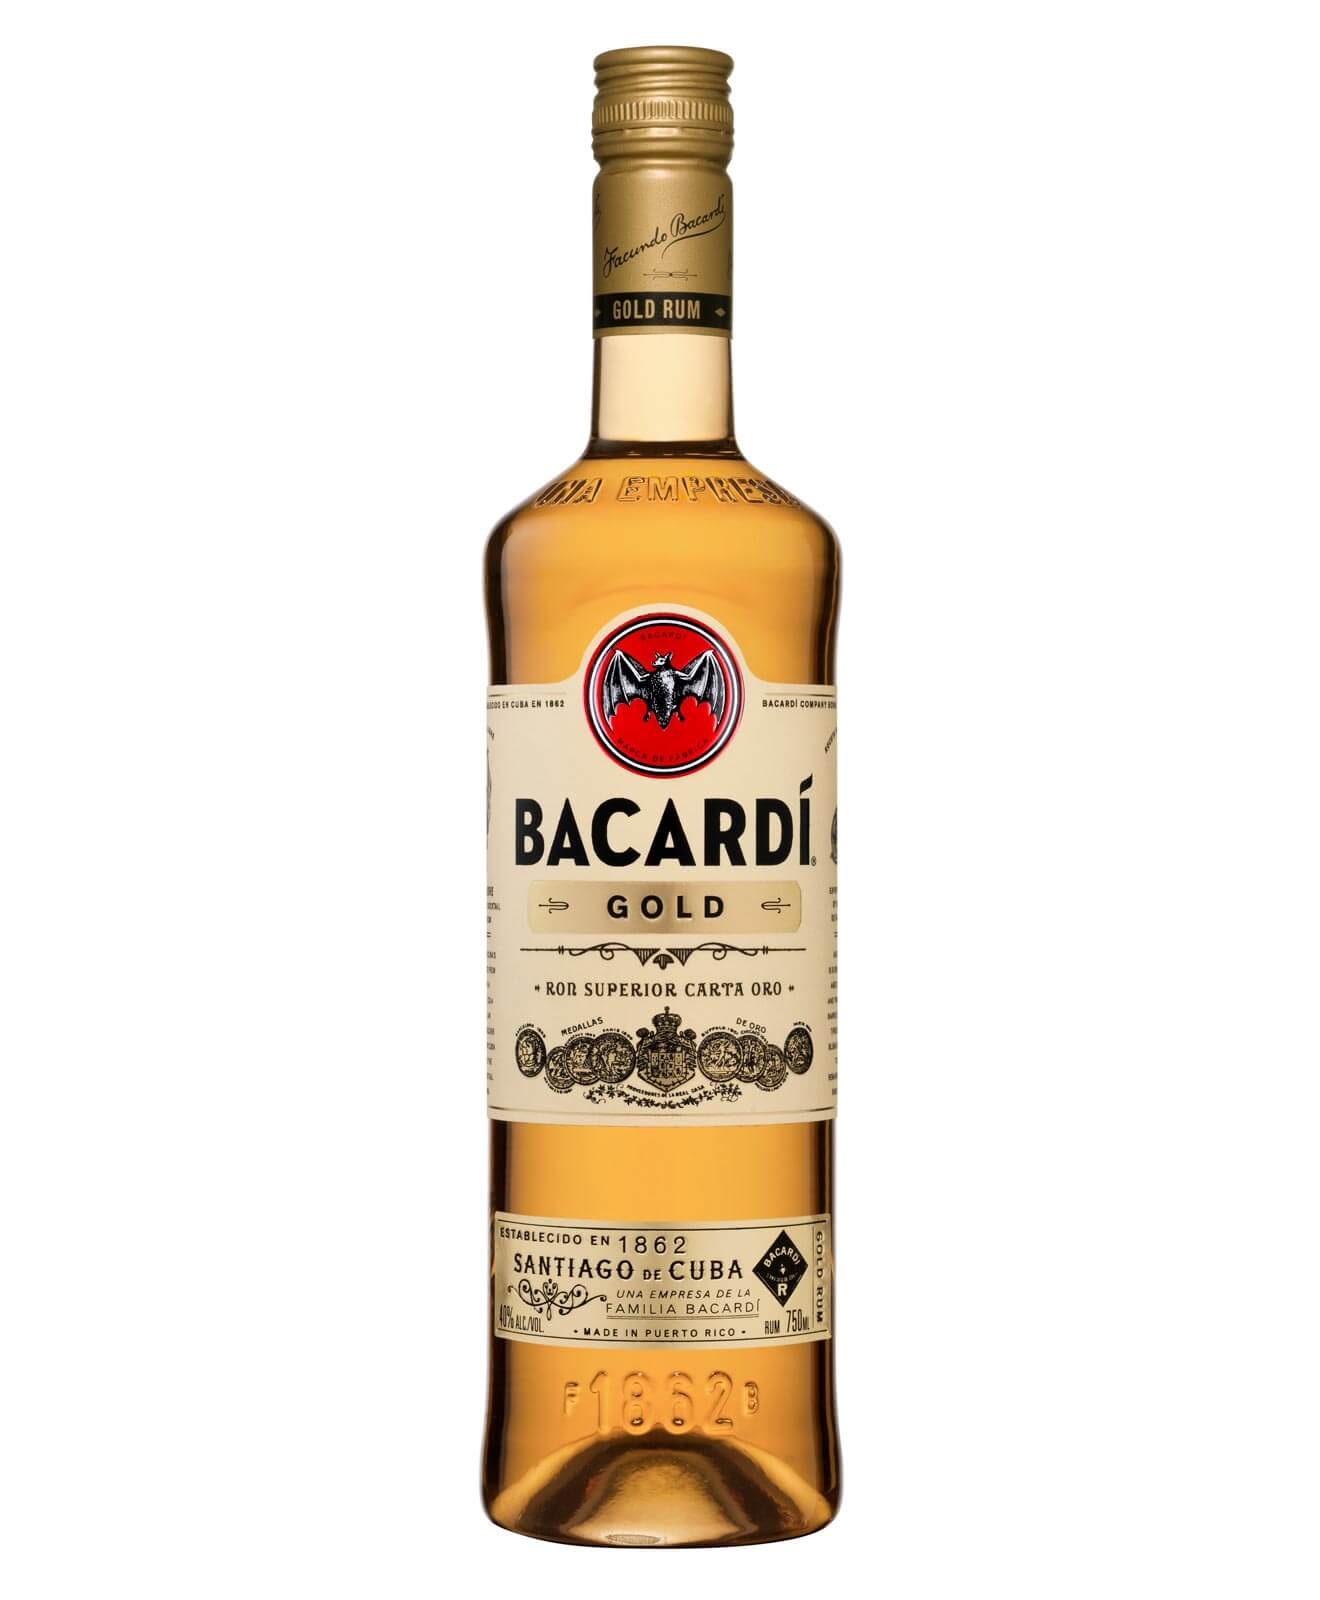 BACARDÍ Gold, bottle on white